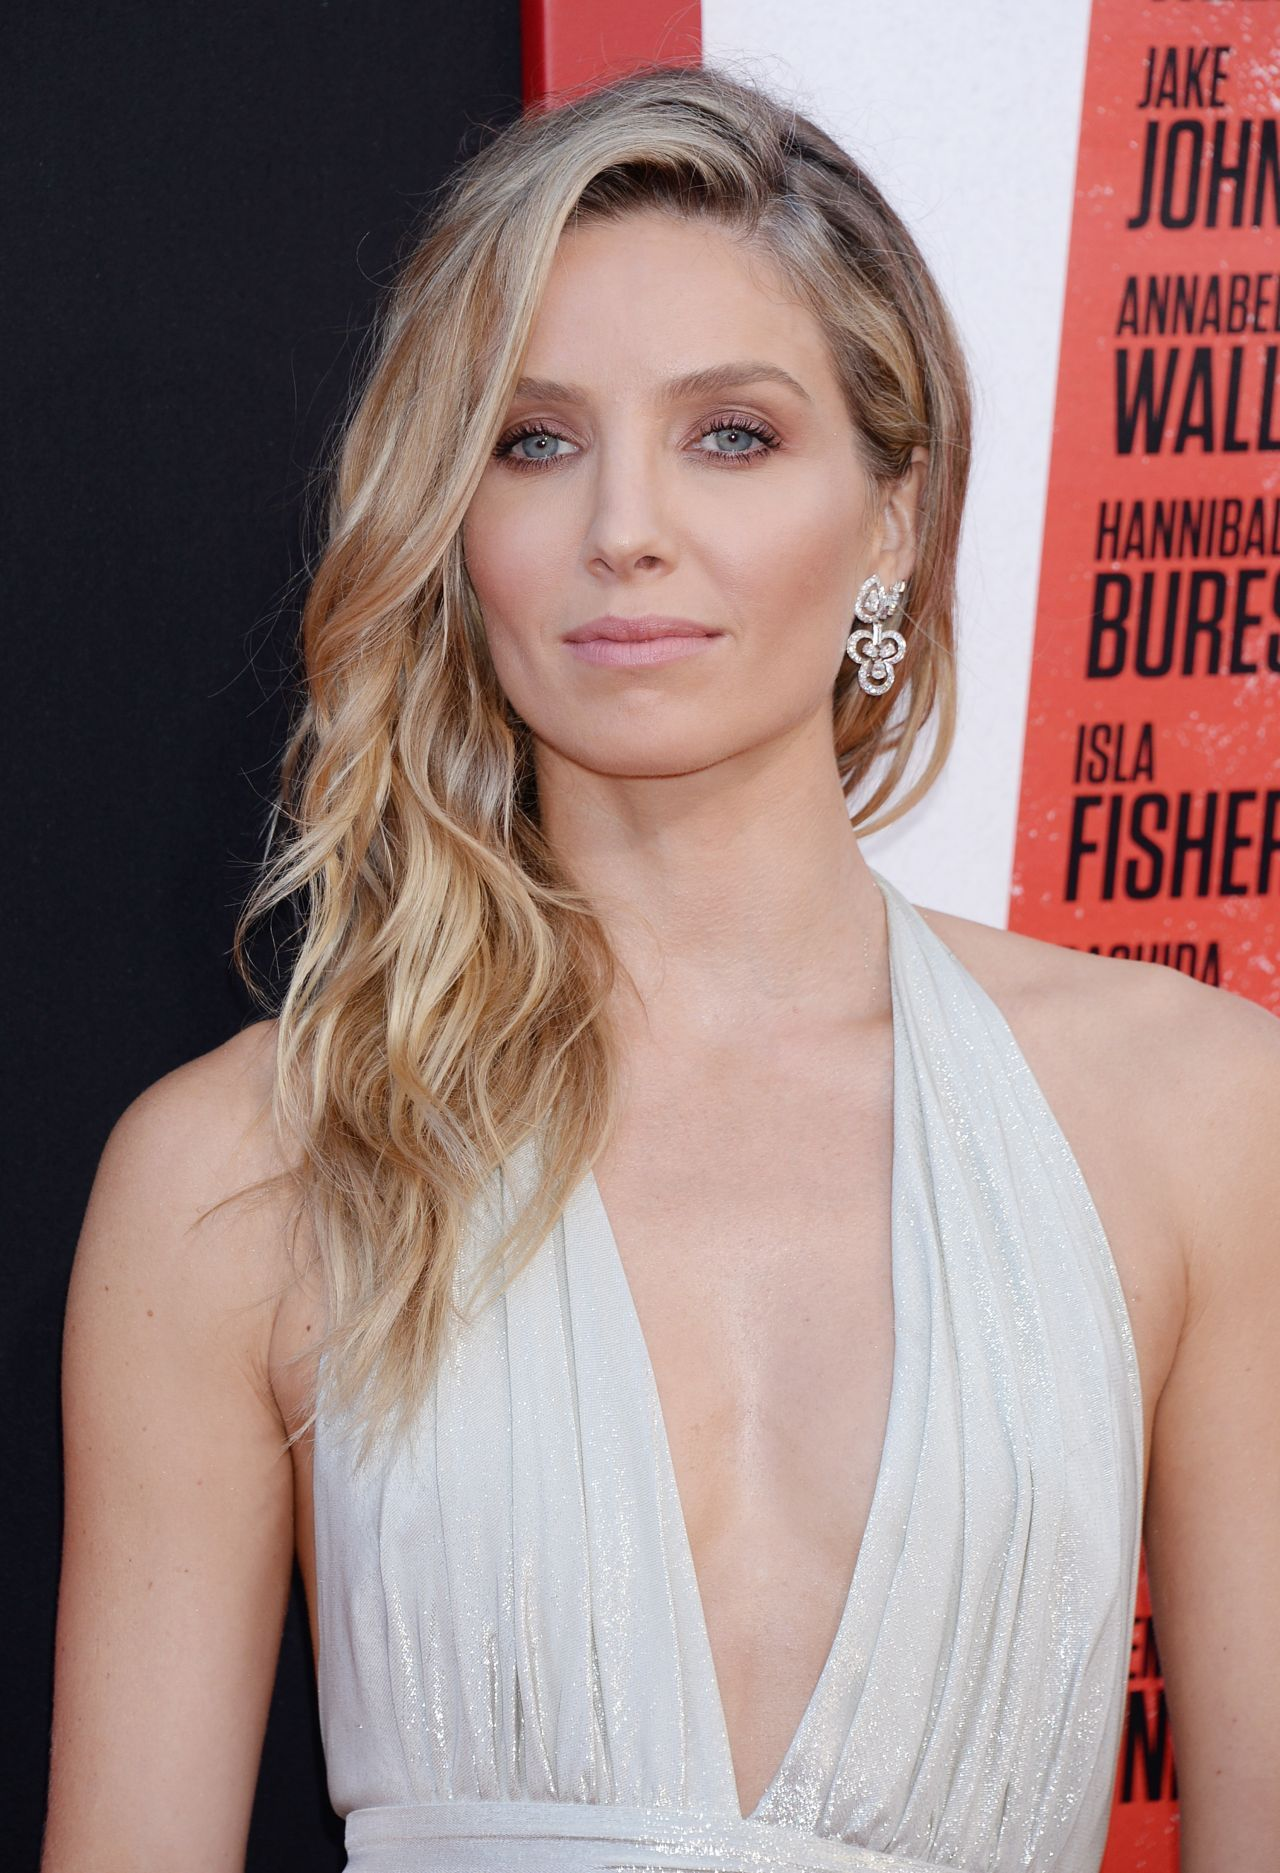 Celebrites Annabelle Wallis nude (36 photos), Pussy, Cleavage, Instagram, swimsuit 2018